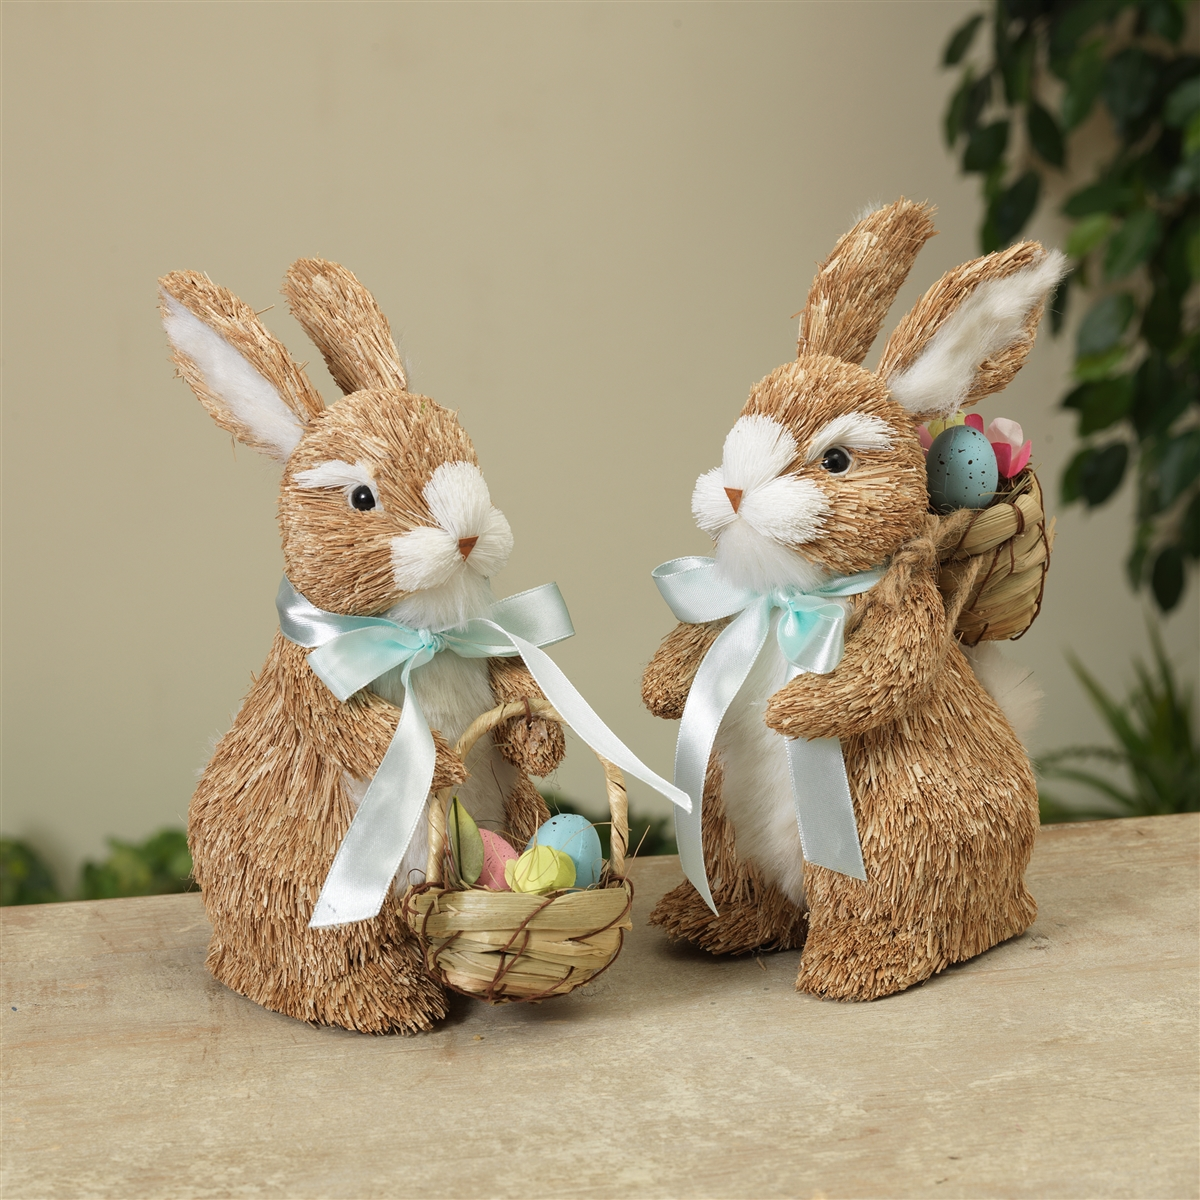 decortive ester ccents easter rabbit decor bunny.htm gerson 8 75  natural grass easter bunny figurines with easter  natural grass easter bunny